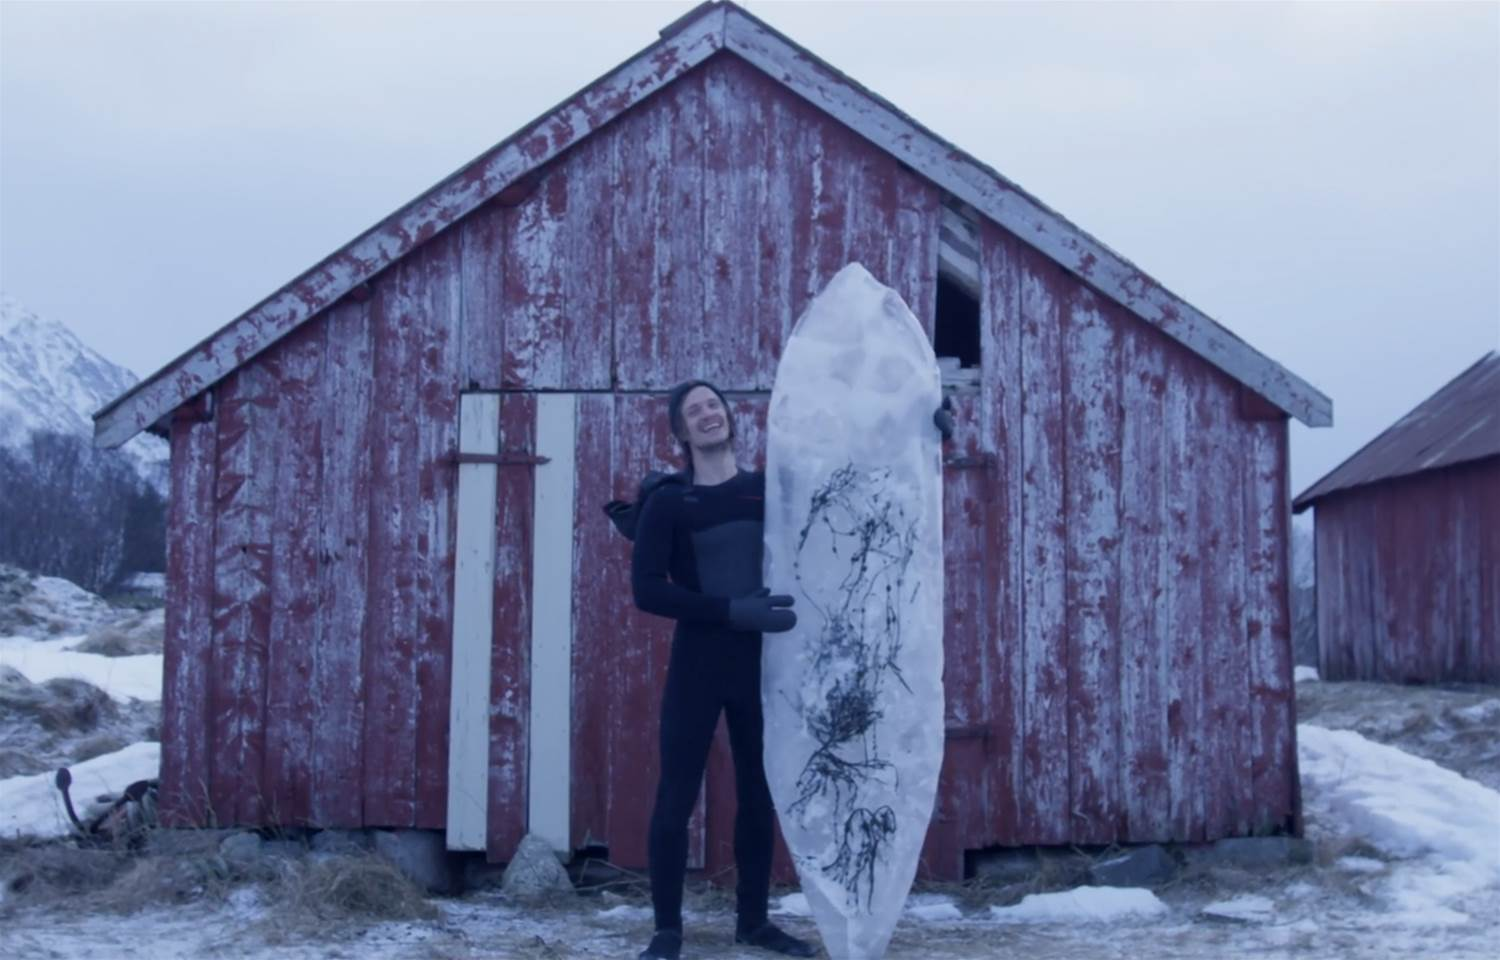 Can You Carve A Surfboard From Ice?